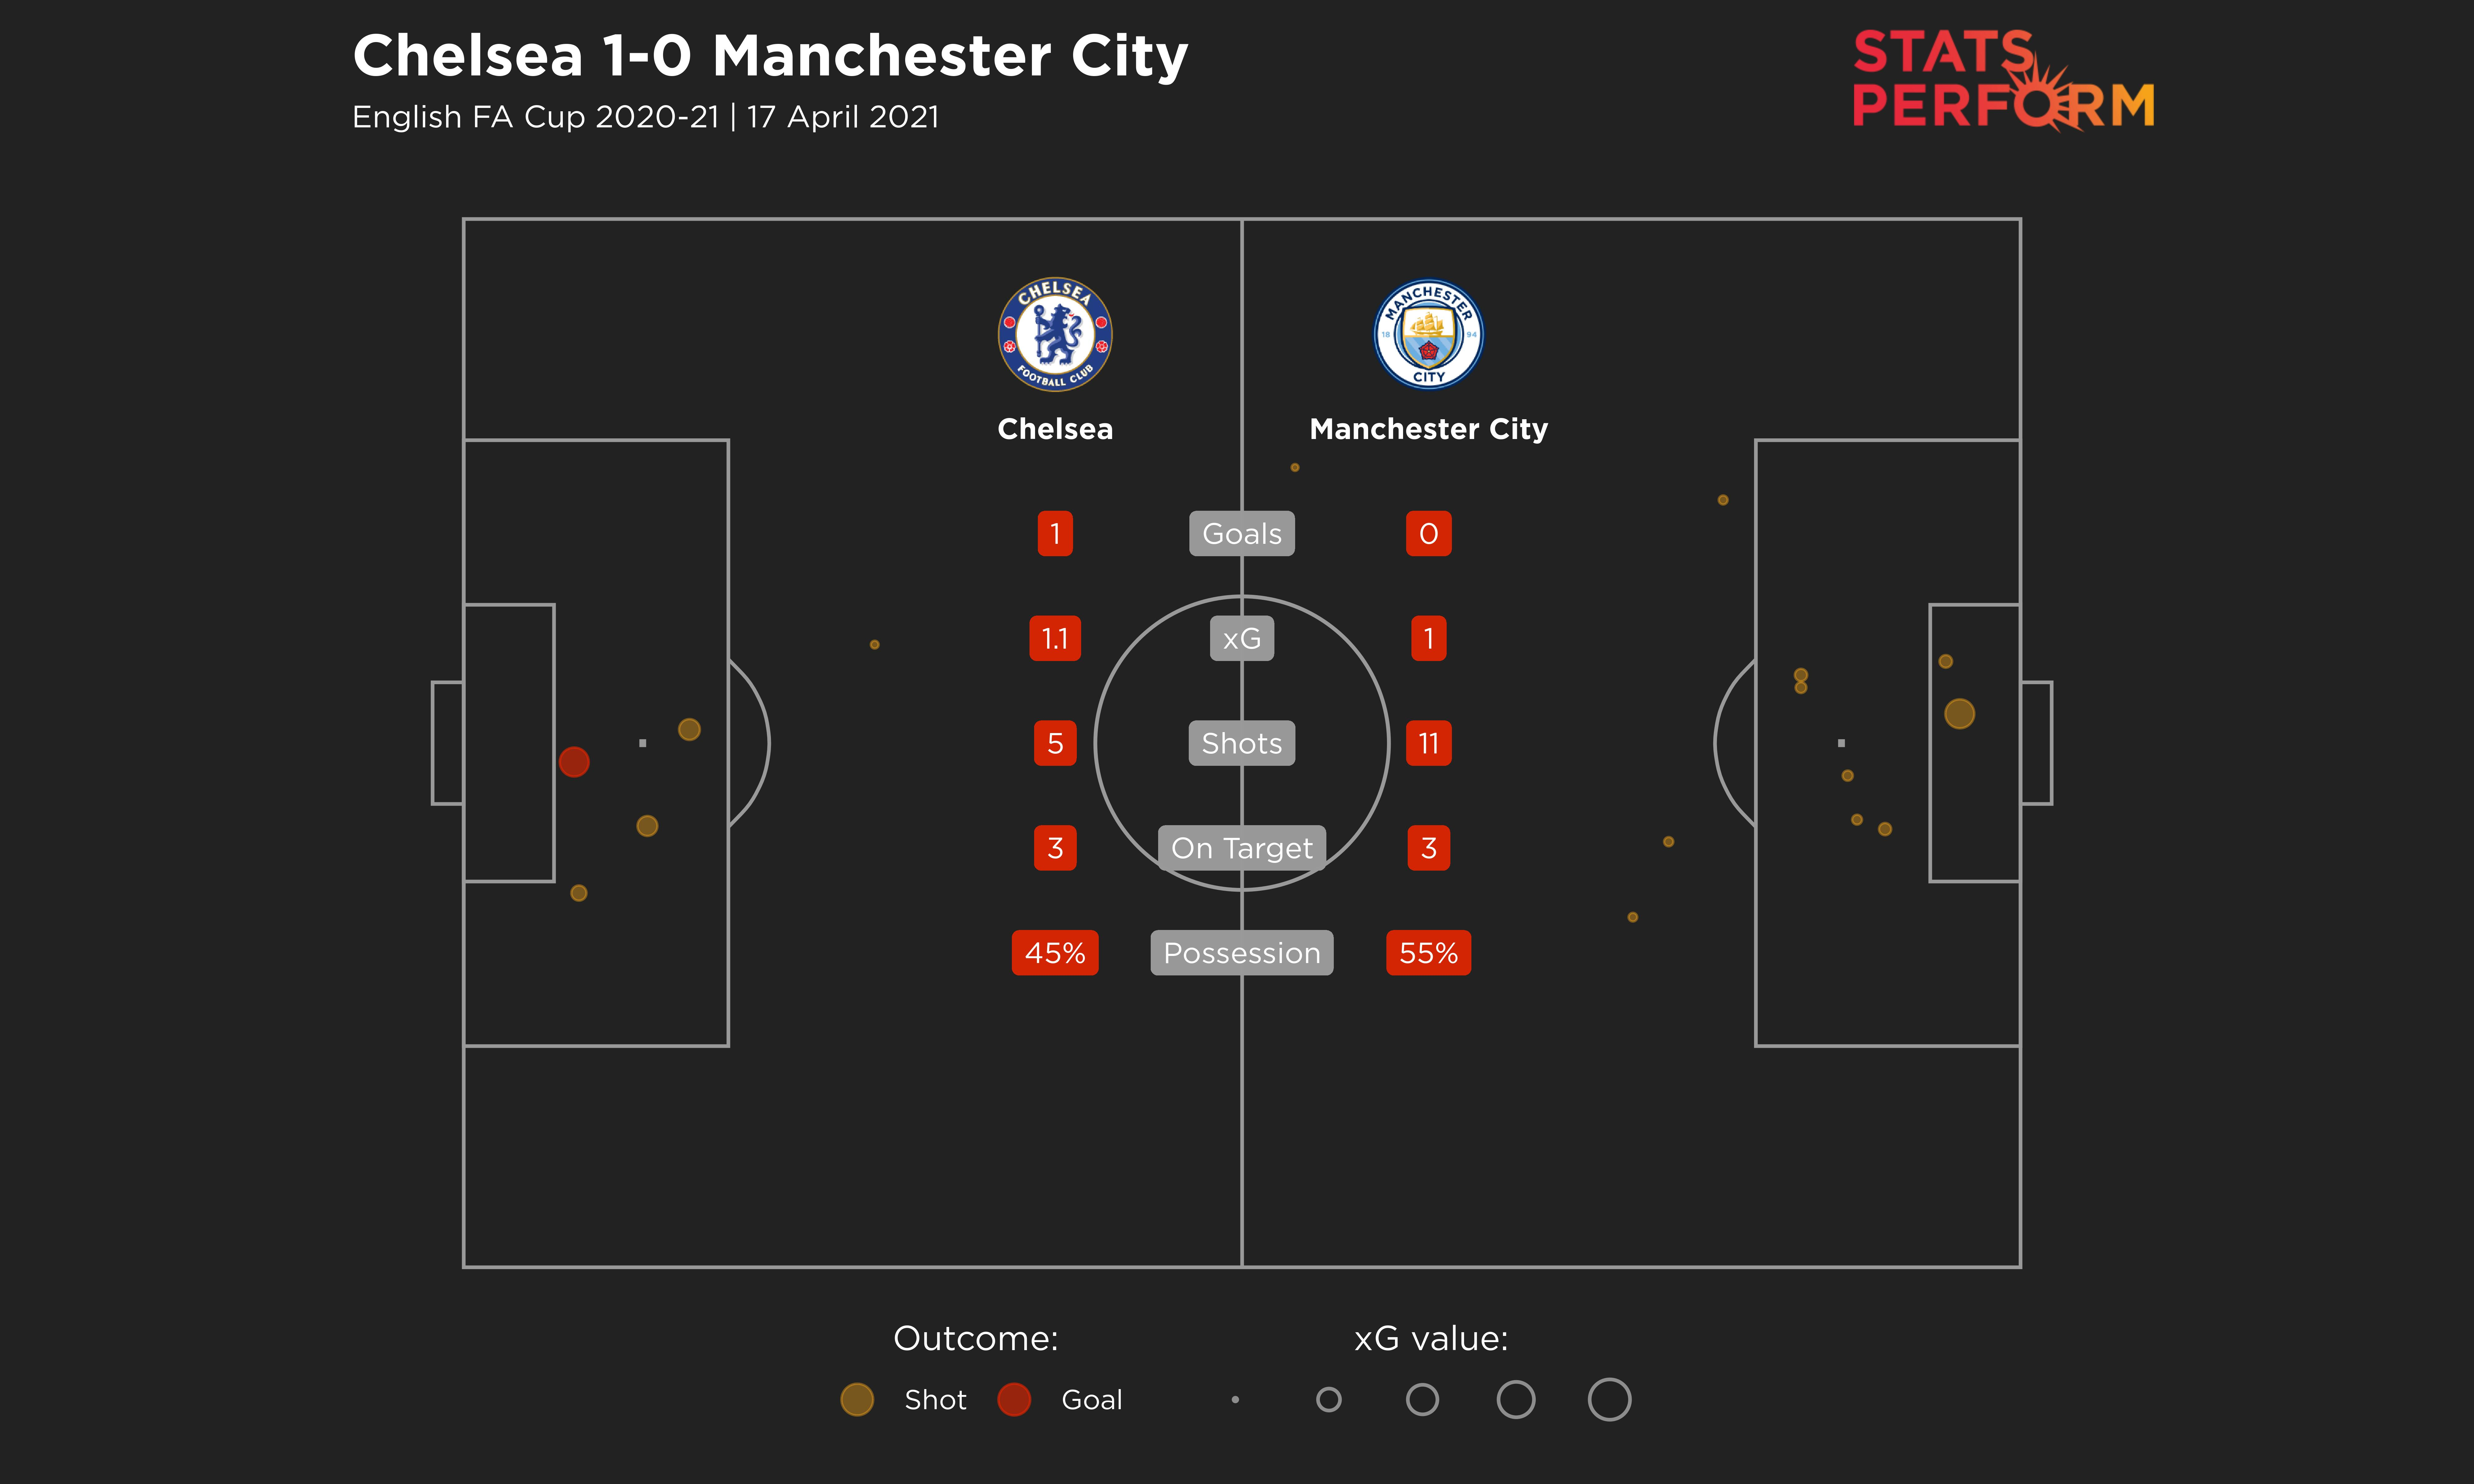 Chelsea versus Manchester City in the FA Cup